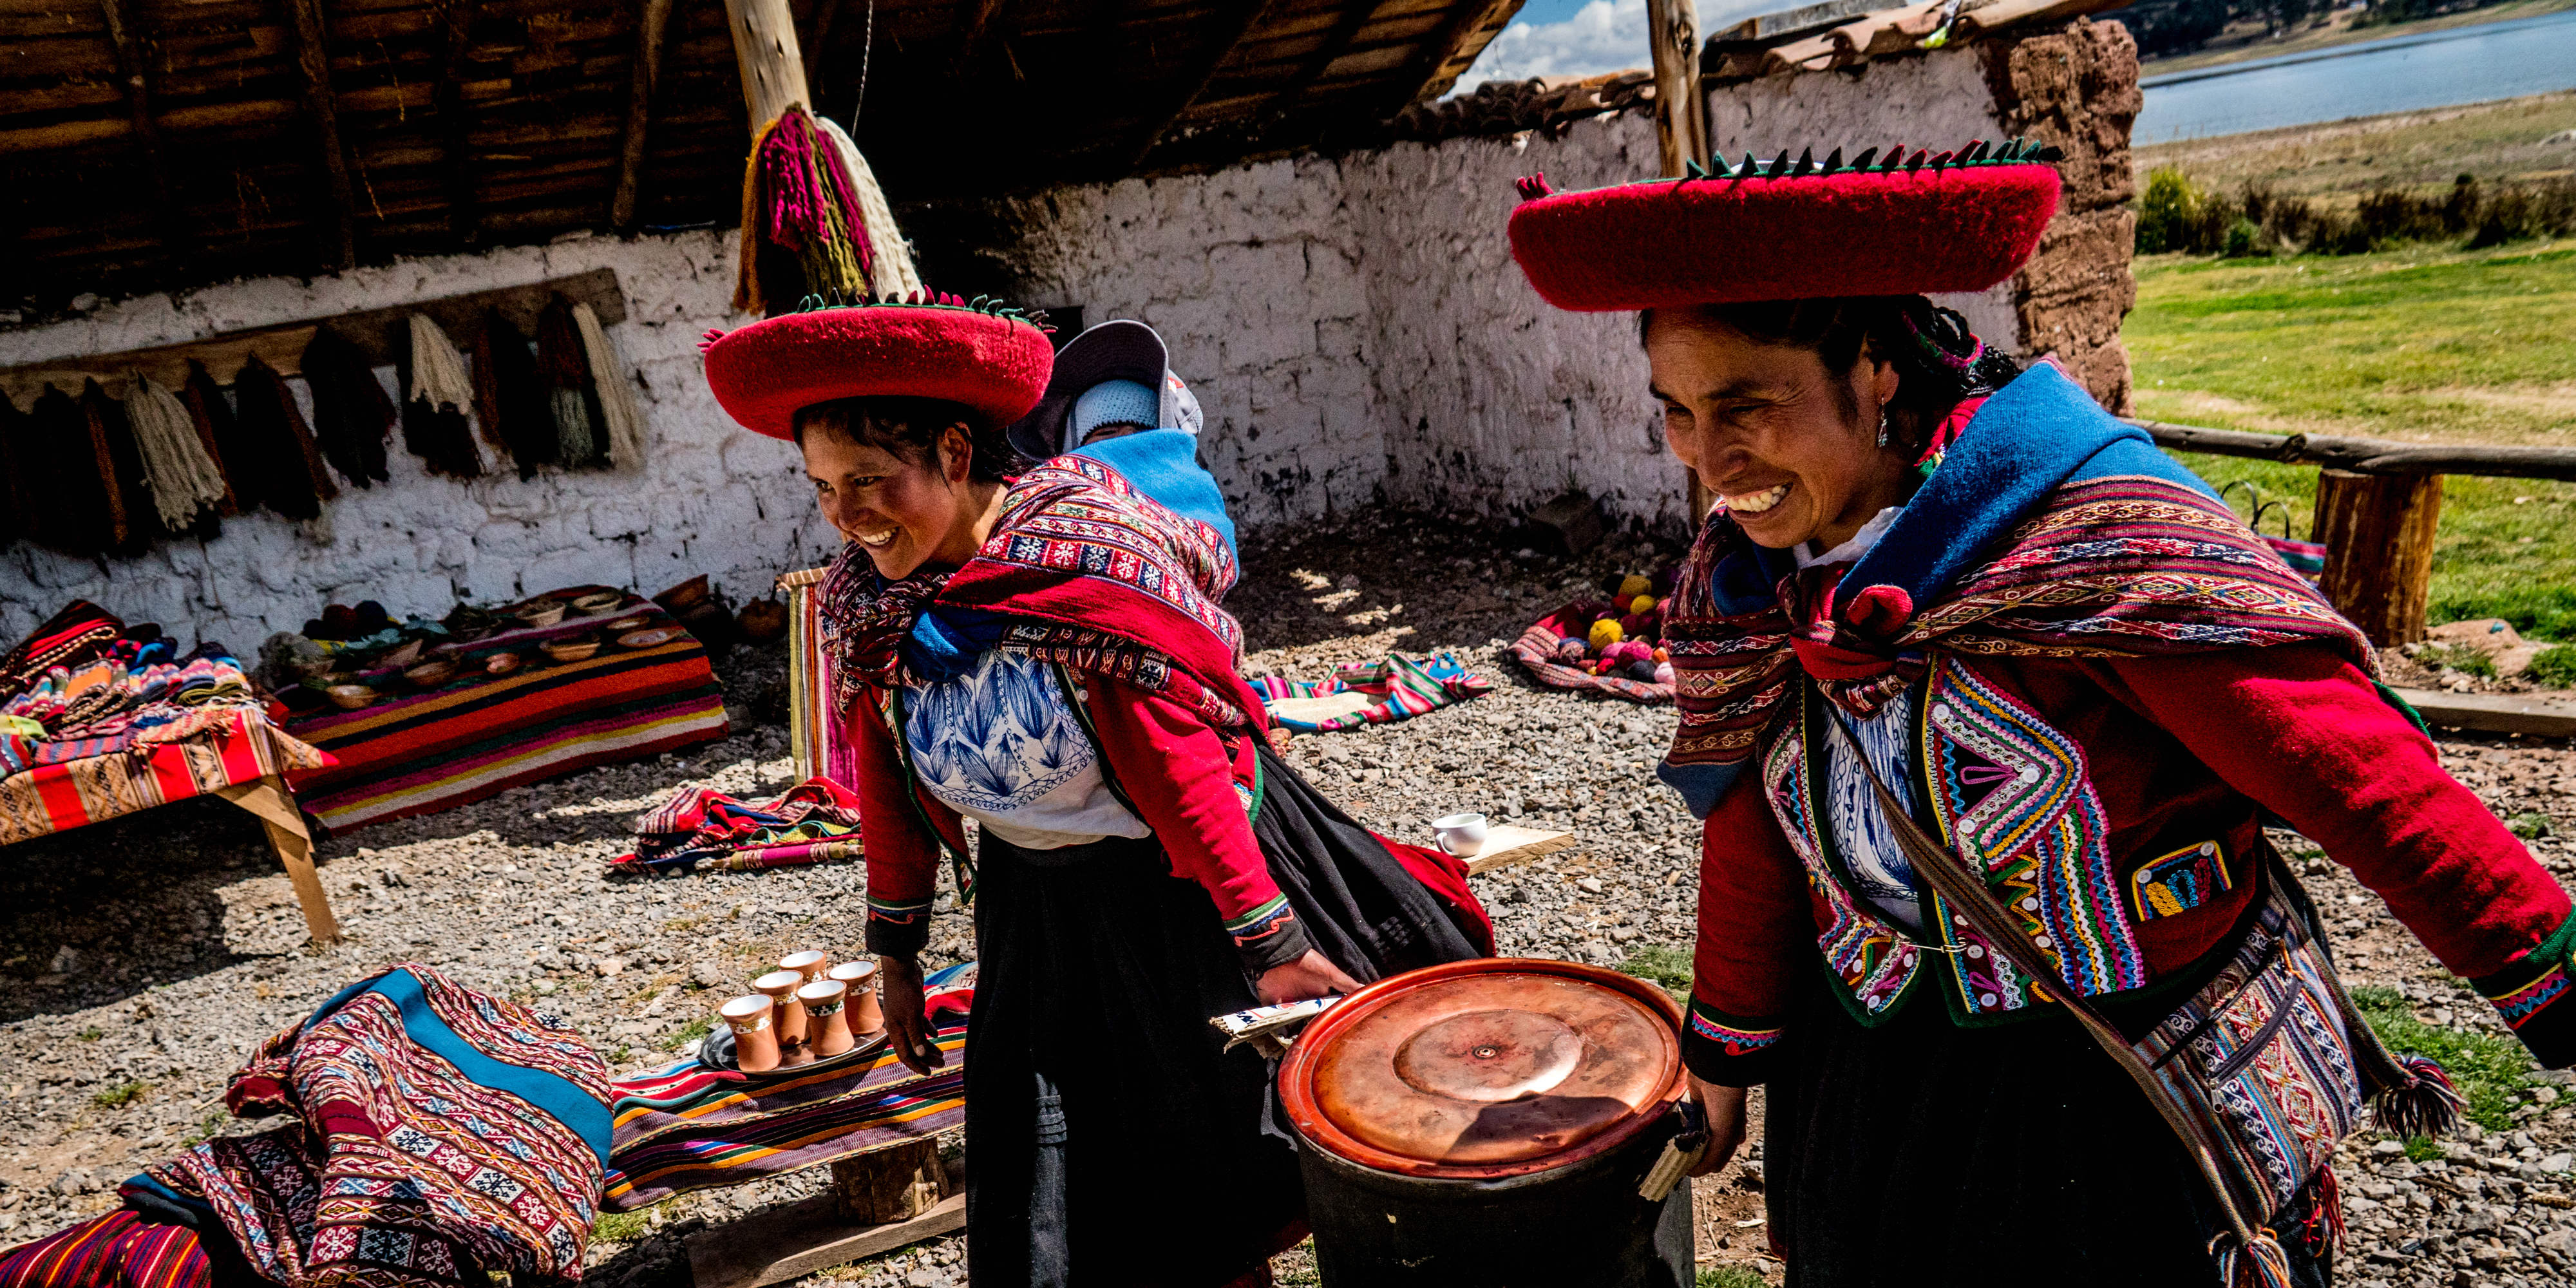 Two quechua people prepare a vat of dye for the traditional method of dyeing wool.